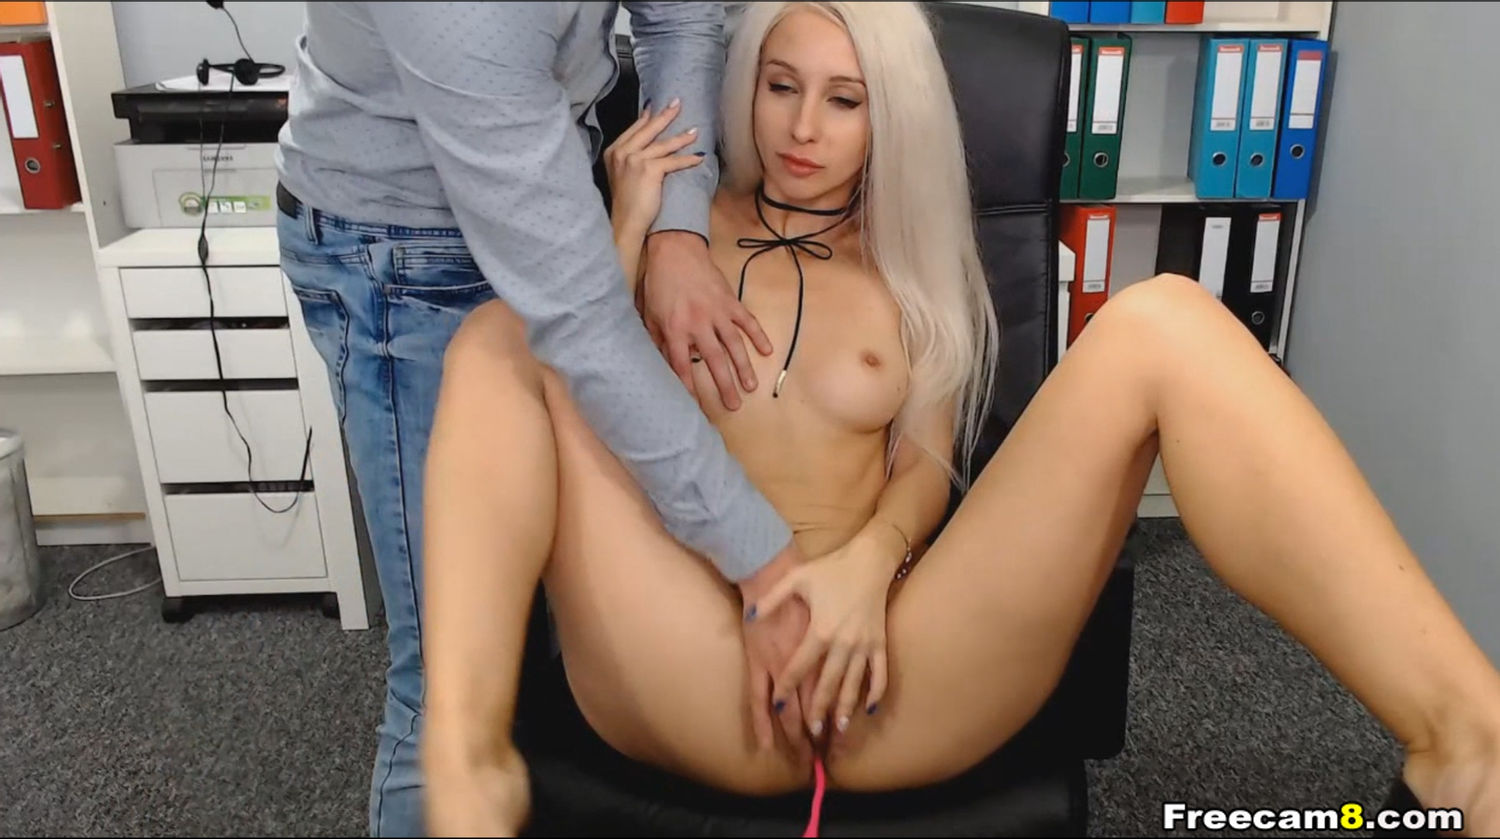 Sexy Blonde Gets a Hot Pussy Play From Lover